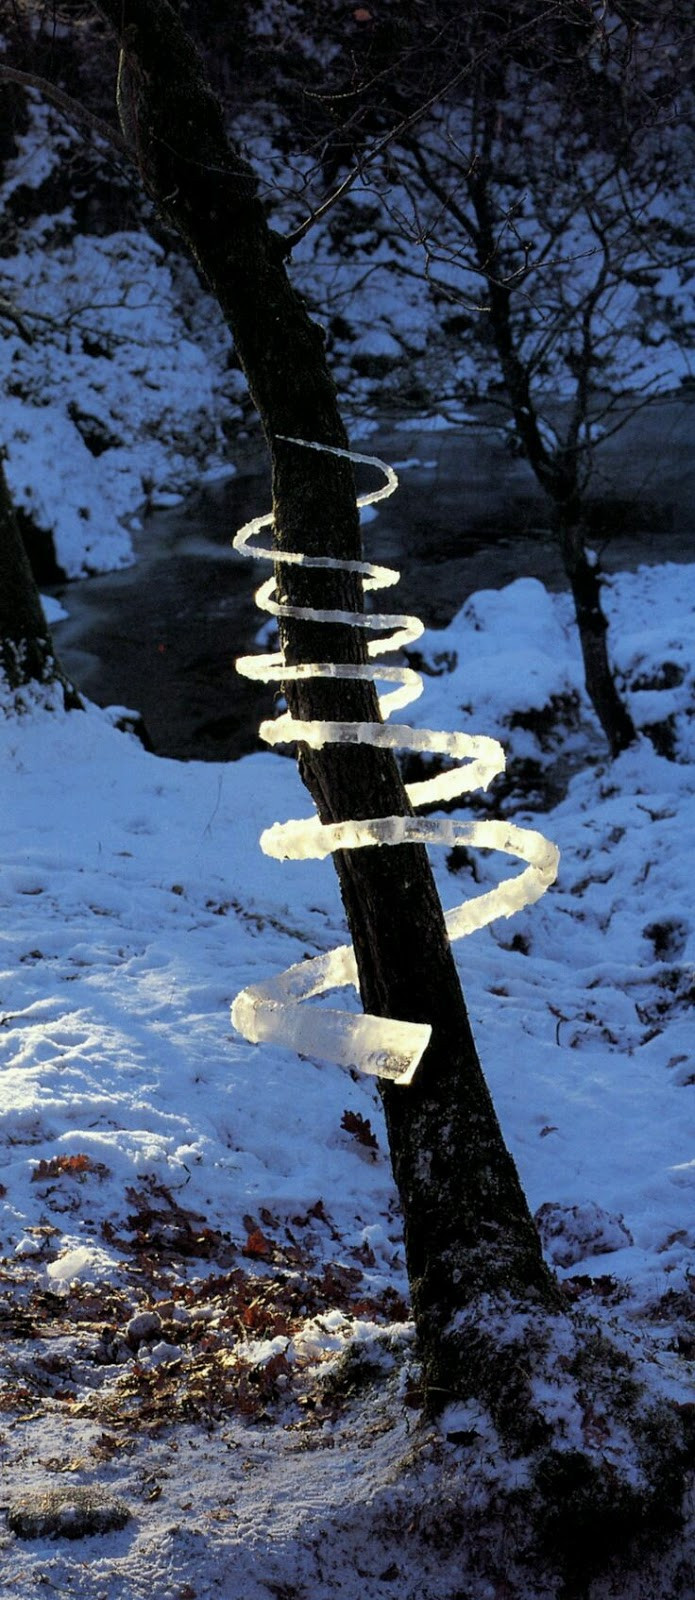 Light catches and illuminates a spiral of ice that the artist has spun around the trunk of a tree. Andy Goldsworthy, Ice. Tree. Blue. Black. White. Light.